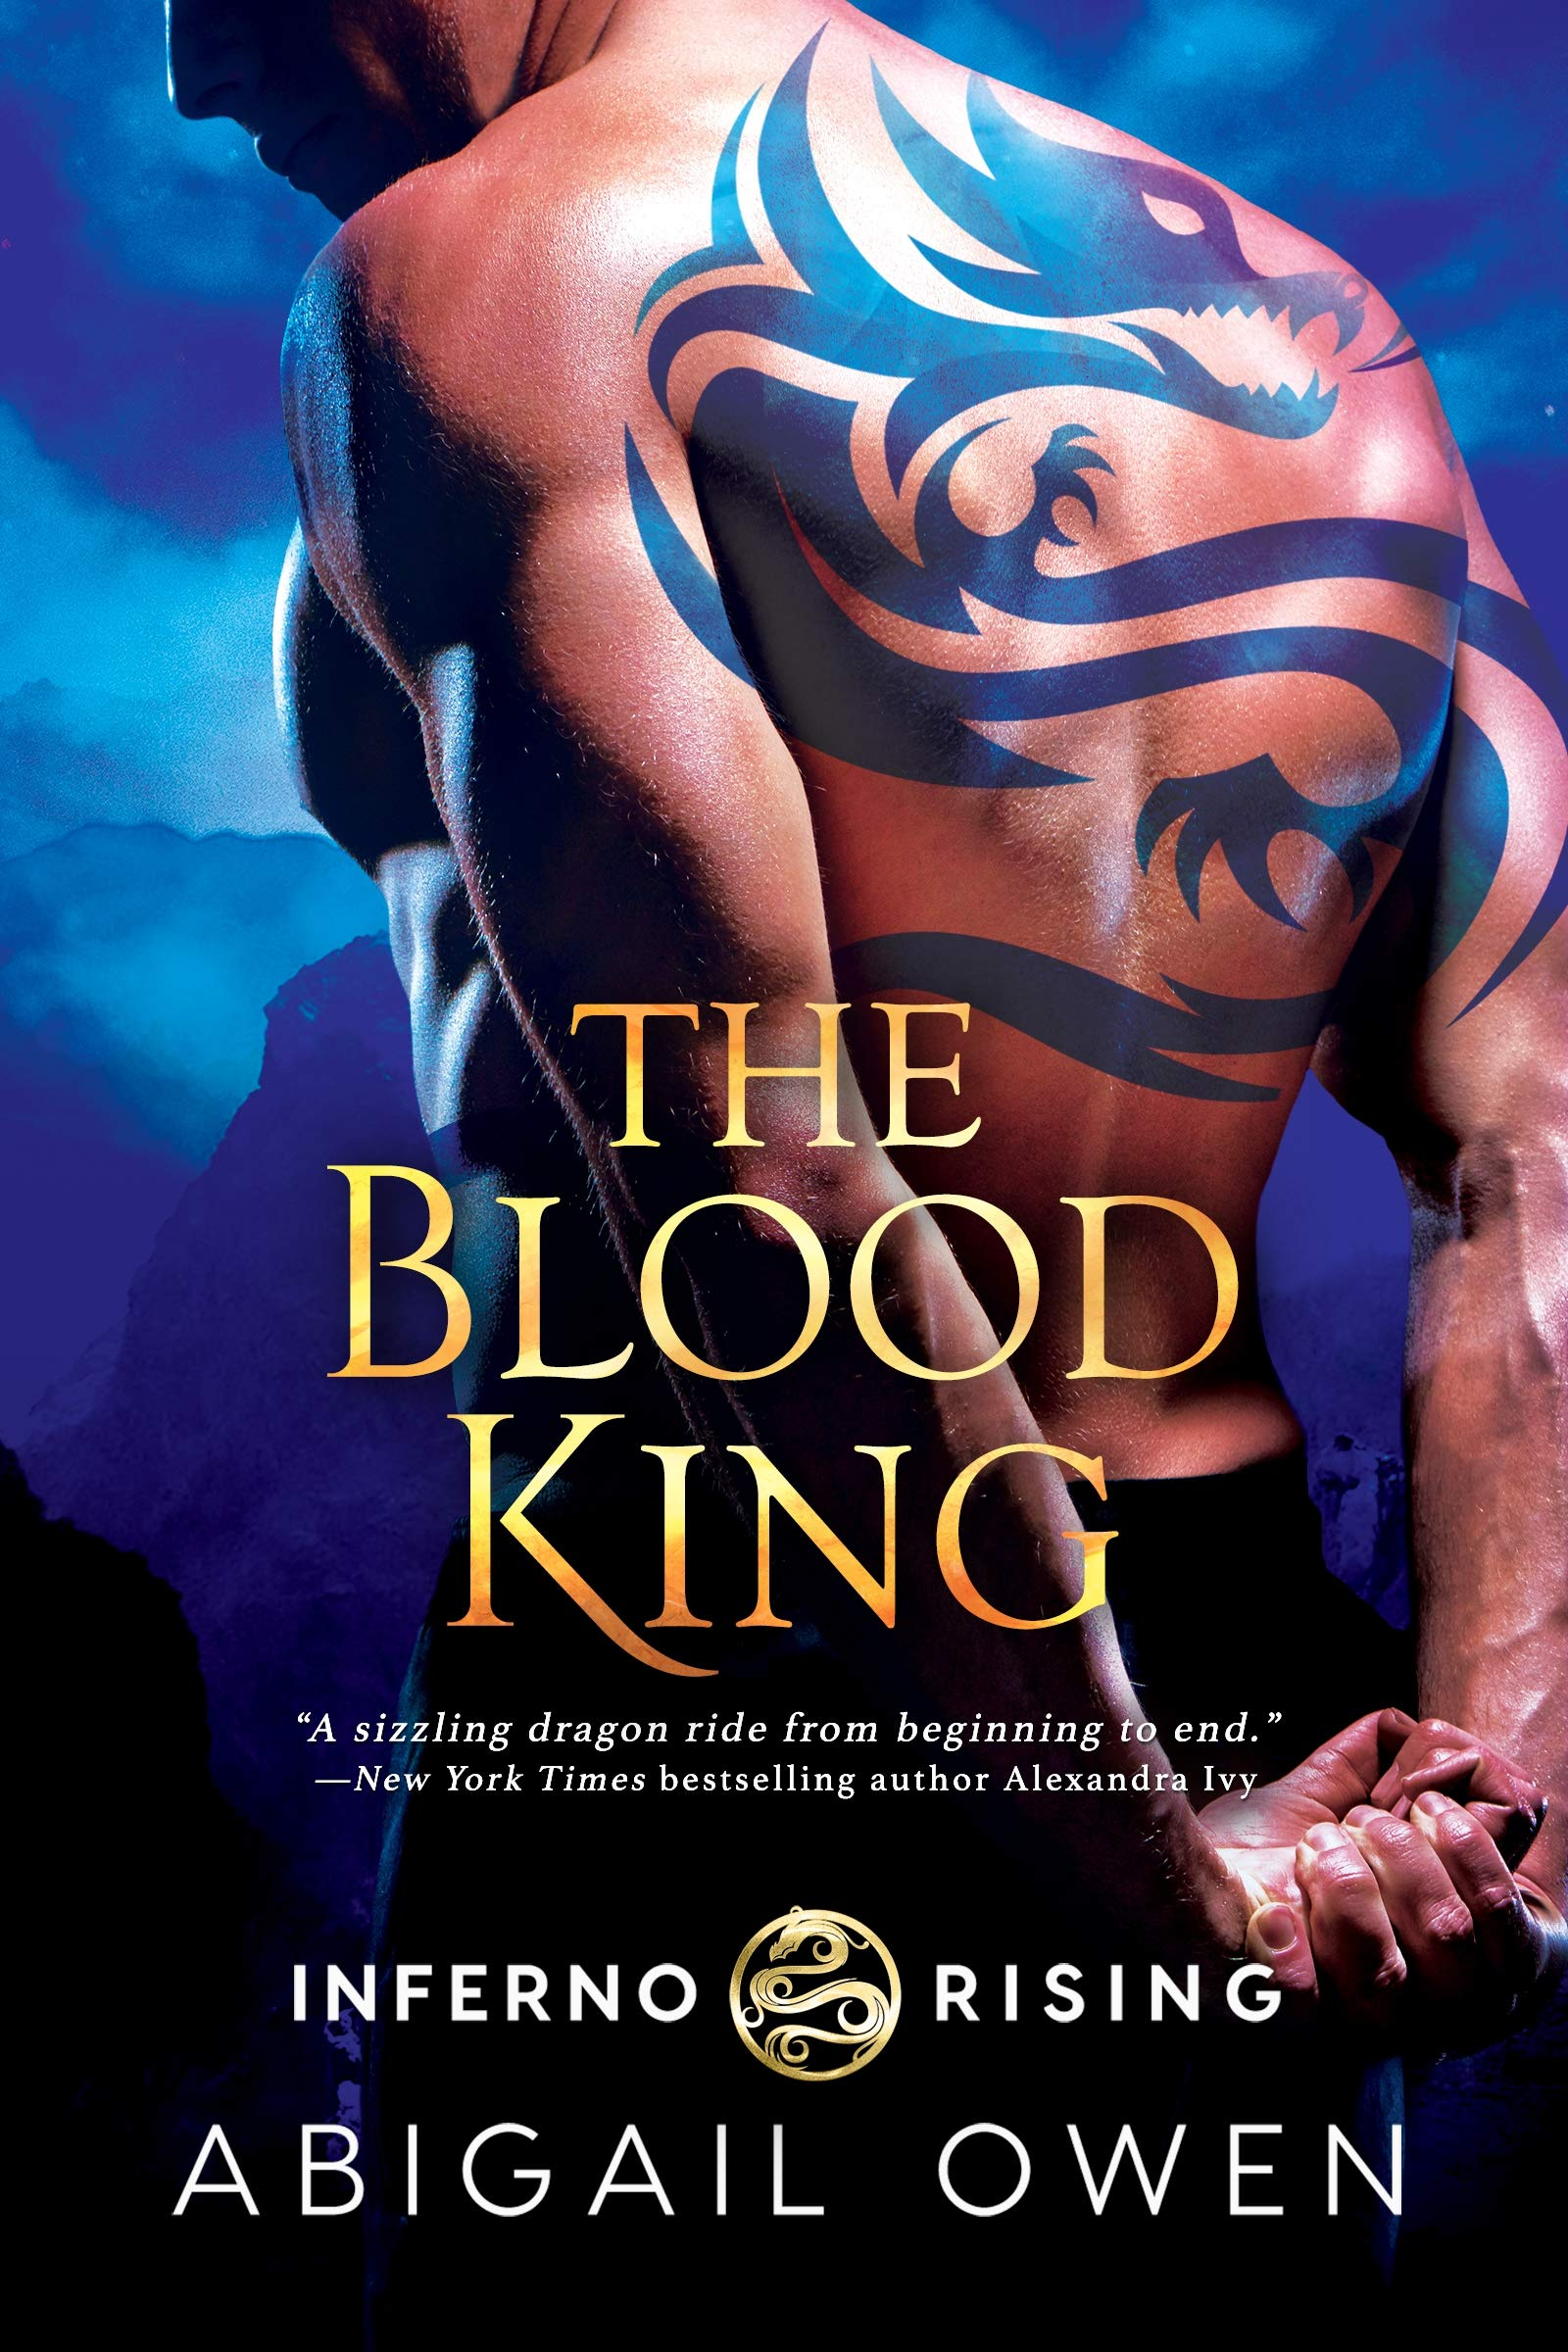 ARC Review for The Blood King by Abigail Owen